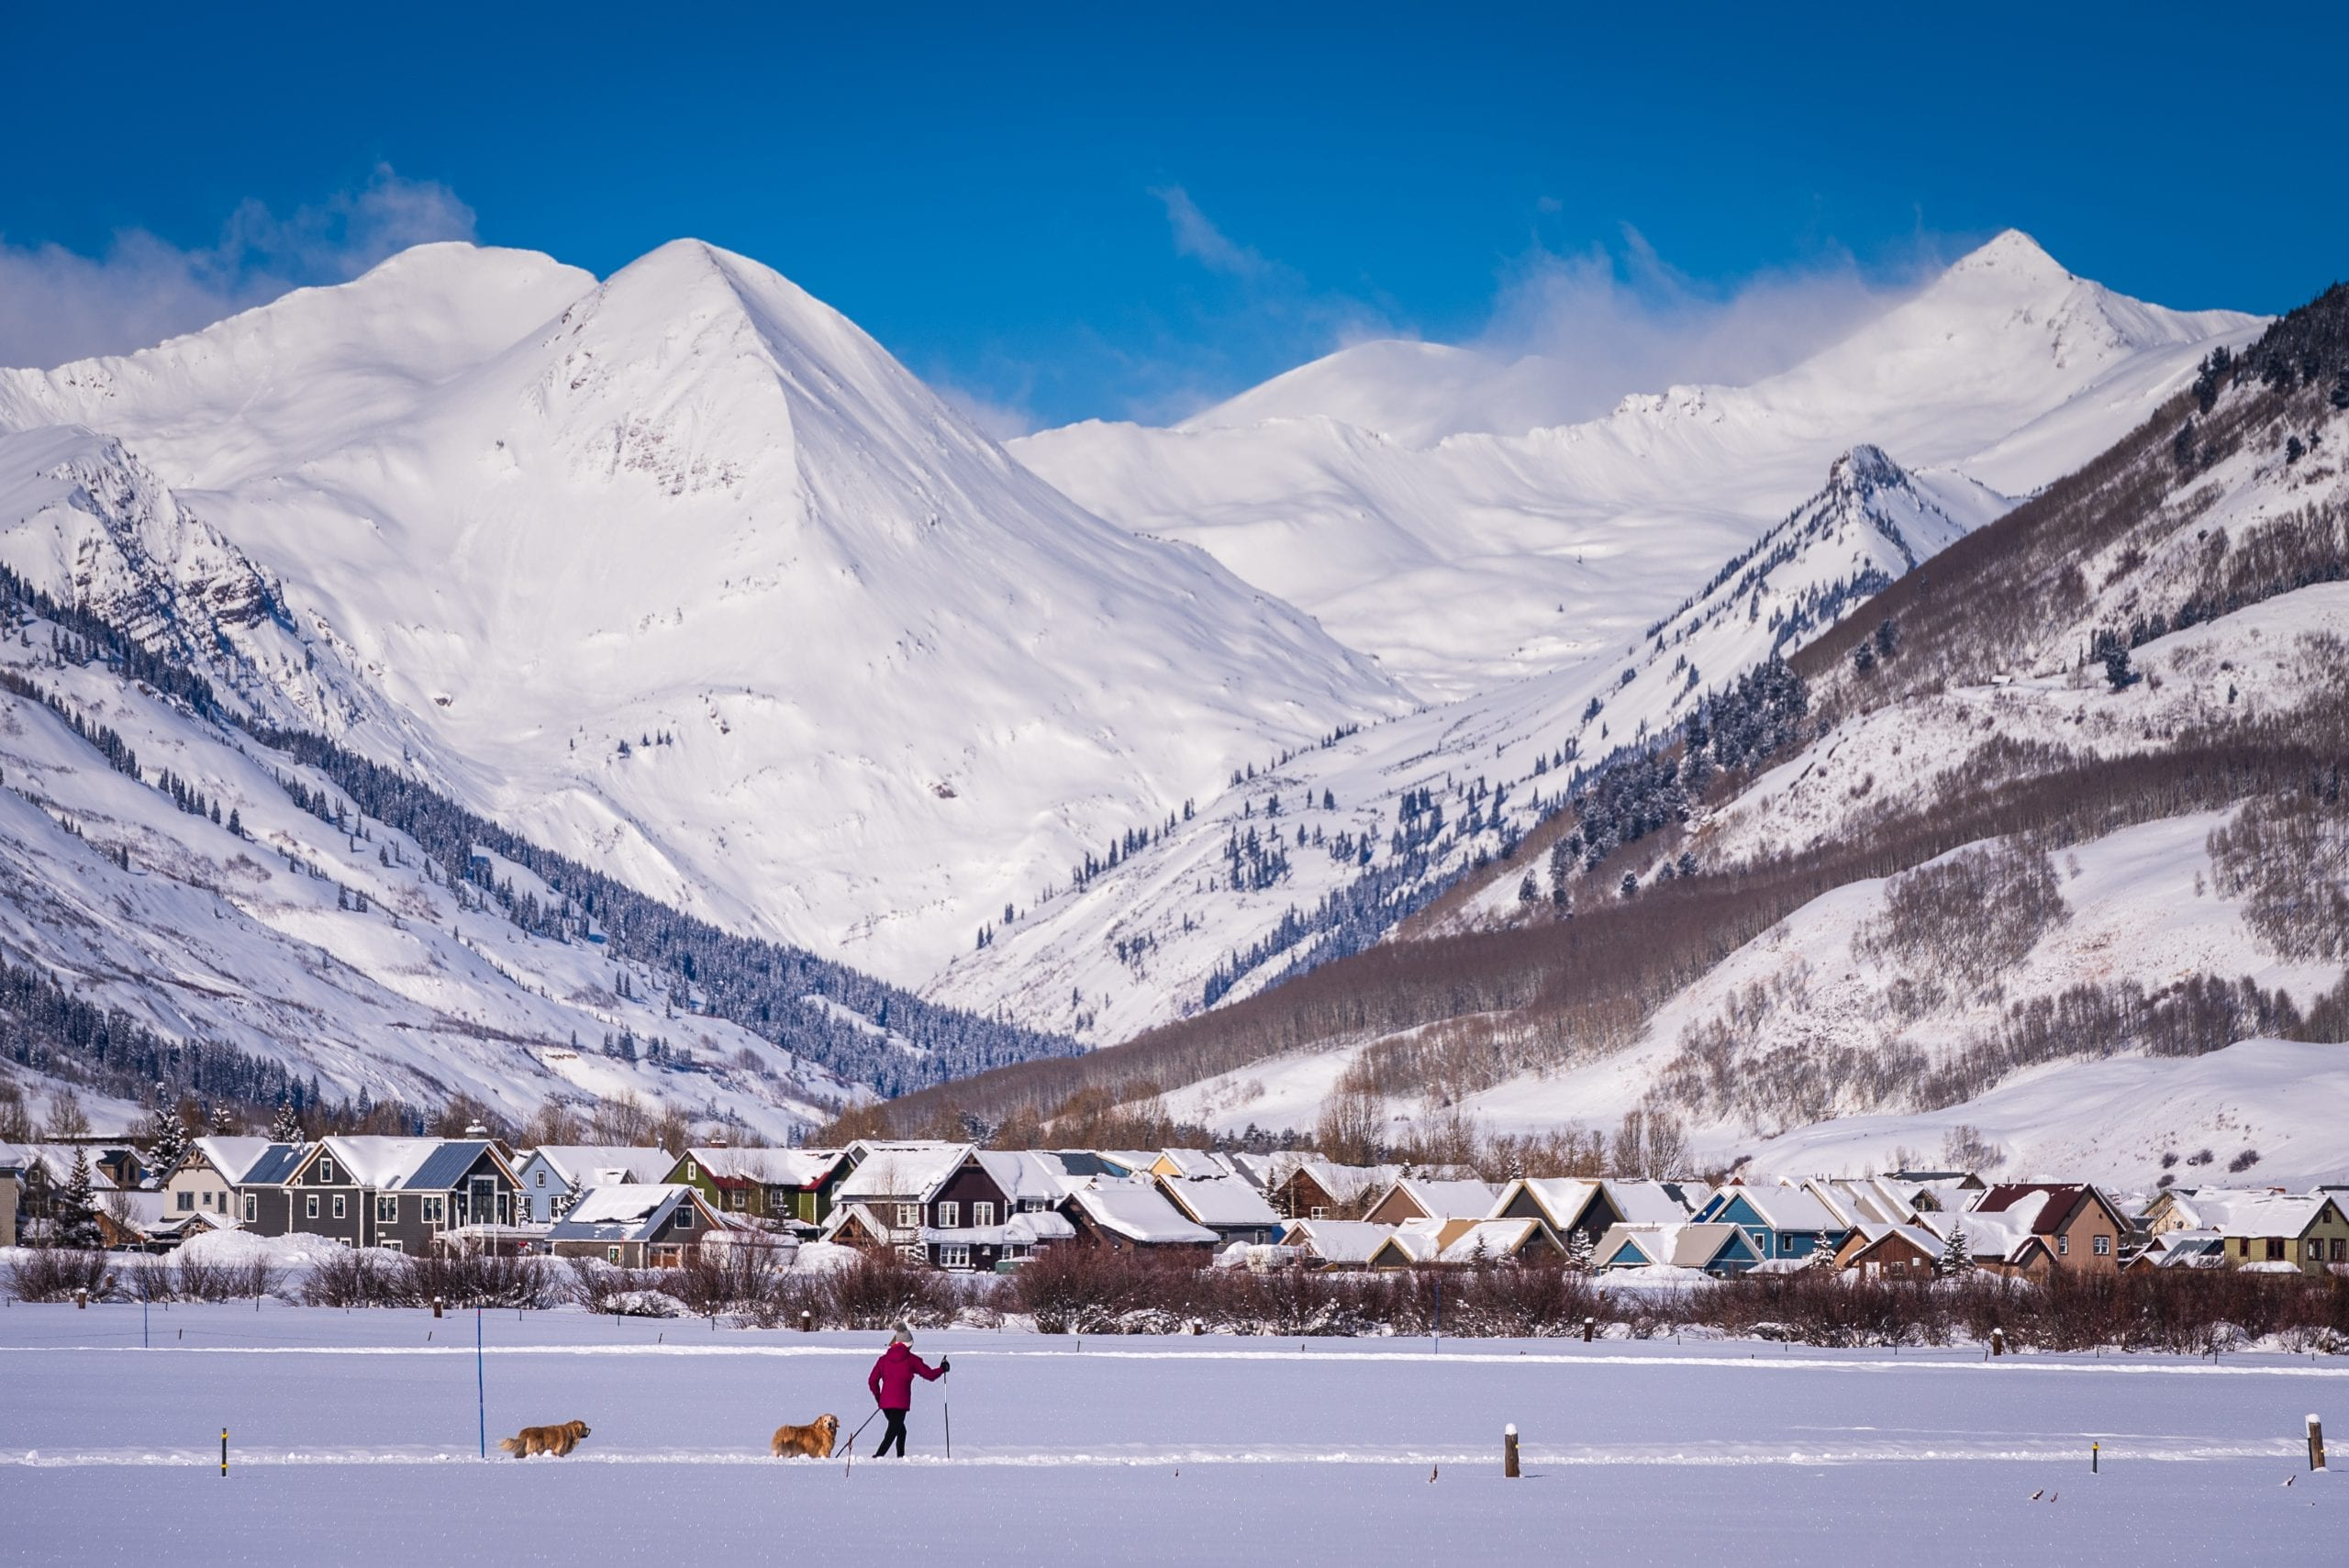 Skier and dogs with CB town and Paradise Divide backdrop